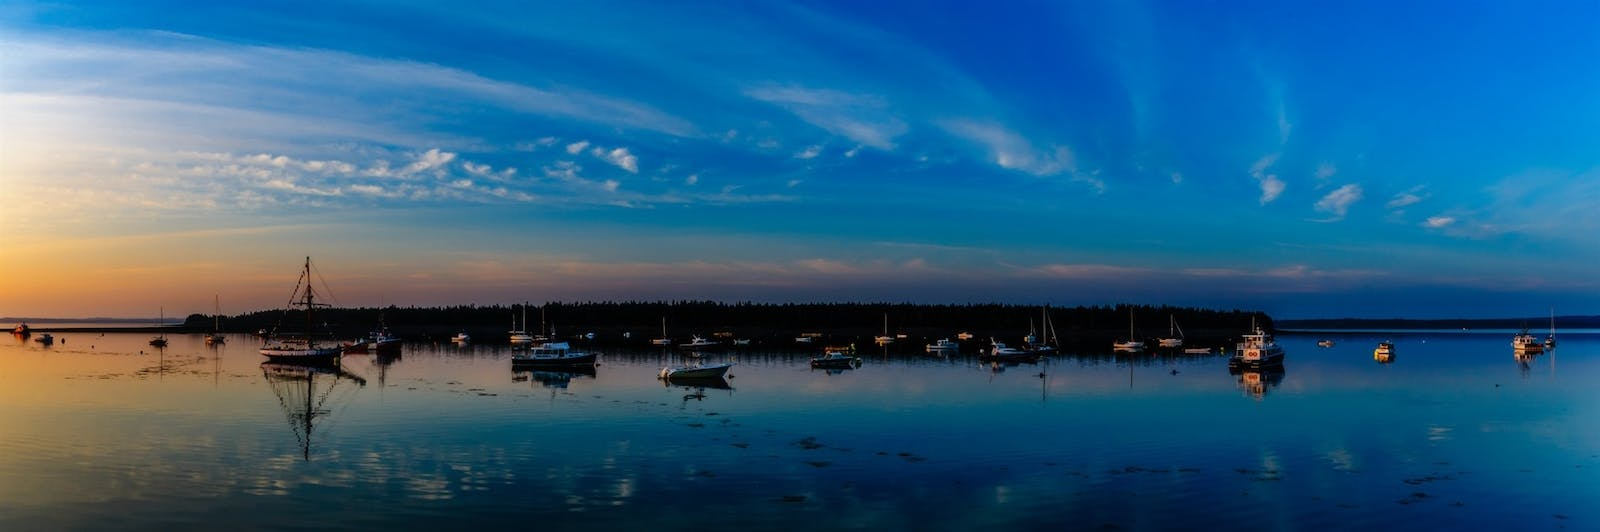 panoramic image of the harbor at st. andrews new brunswick